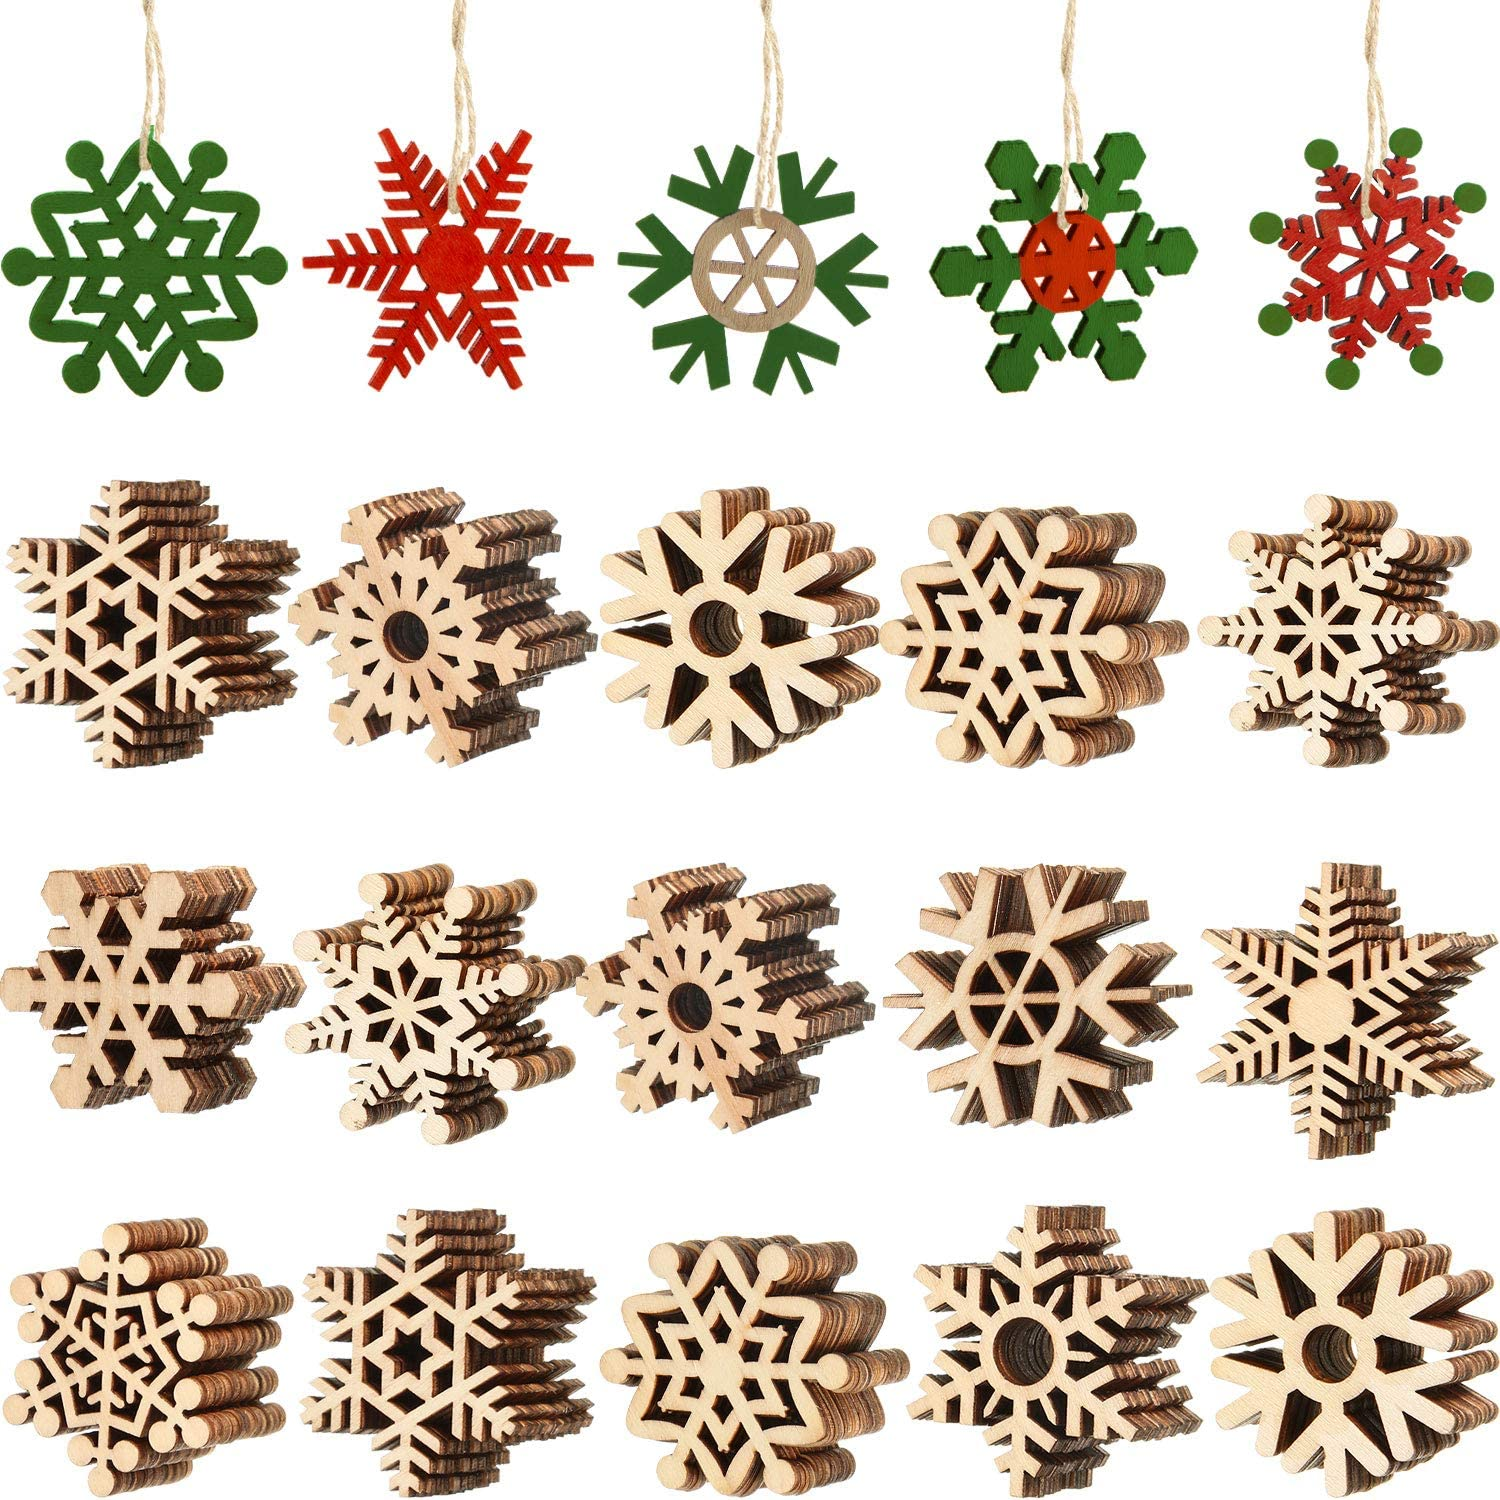 Amazon Com Blulu 100 Pieces Christmas Wooden Snowflake Unfinished Wooden Snowflake Cutouts Hollowed Snowflakes Embellishments Christmas Tree Hanging Ornaments With Cord For Christmas Decoration Craft 2 Inches Furniture Decor